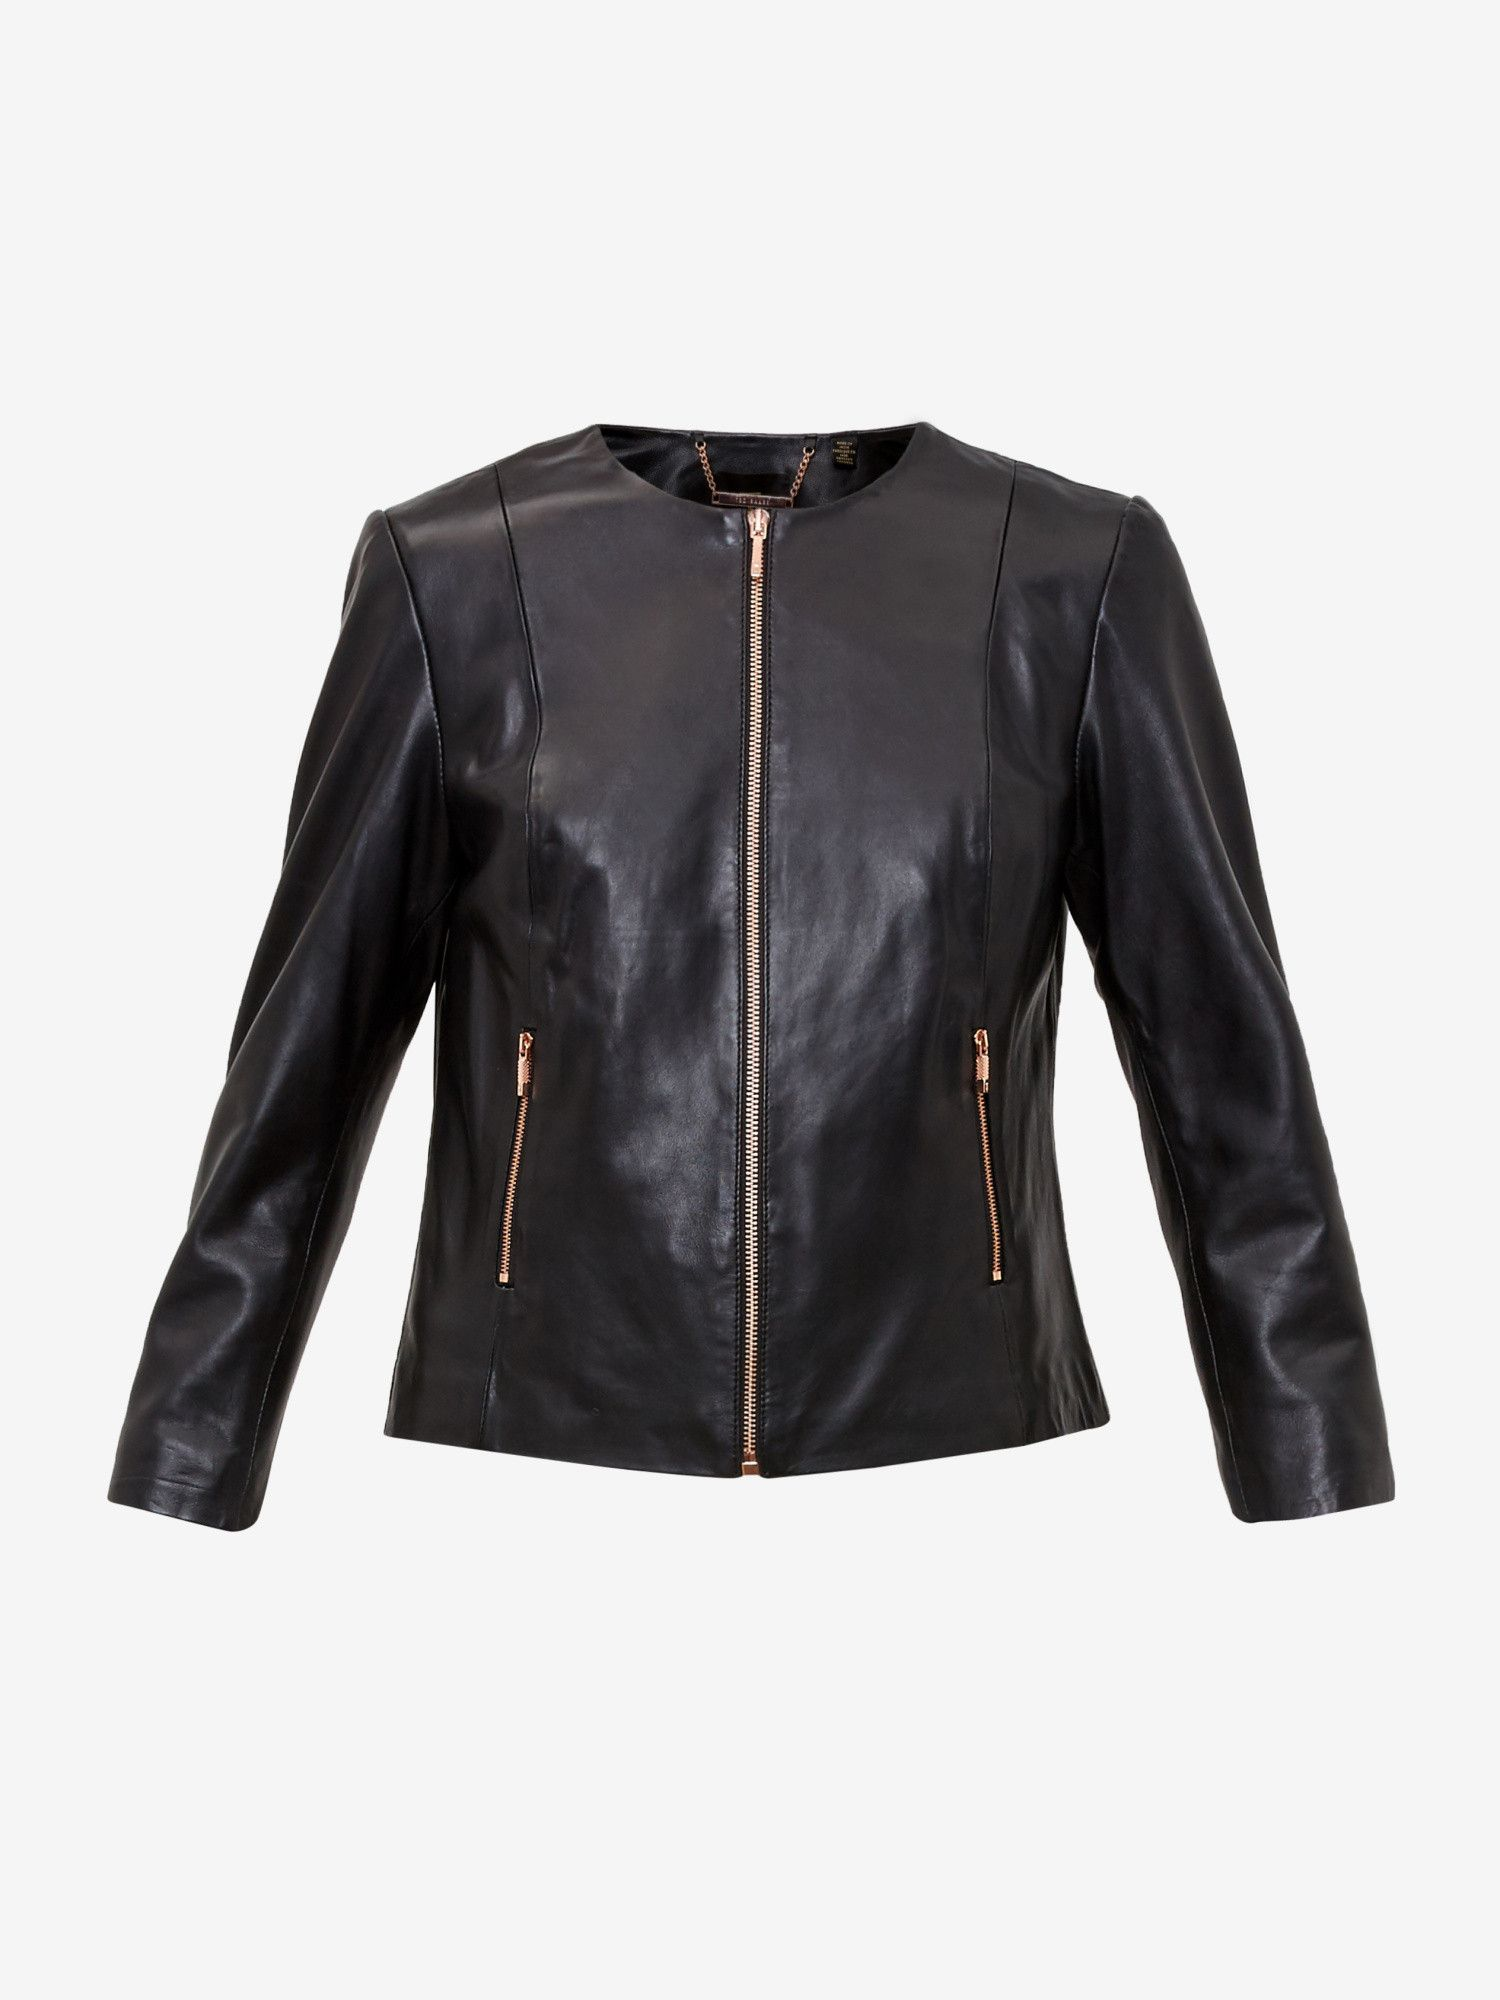 Collarless Leather Jacket Black Jackets And Coats Ted Baker Uk Leather Jacket Collarless Leather Jacket Leather Jacket Black [ 2000 x 1500 Pixel ]